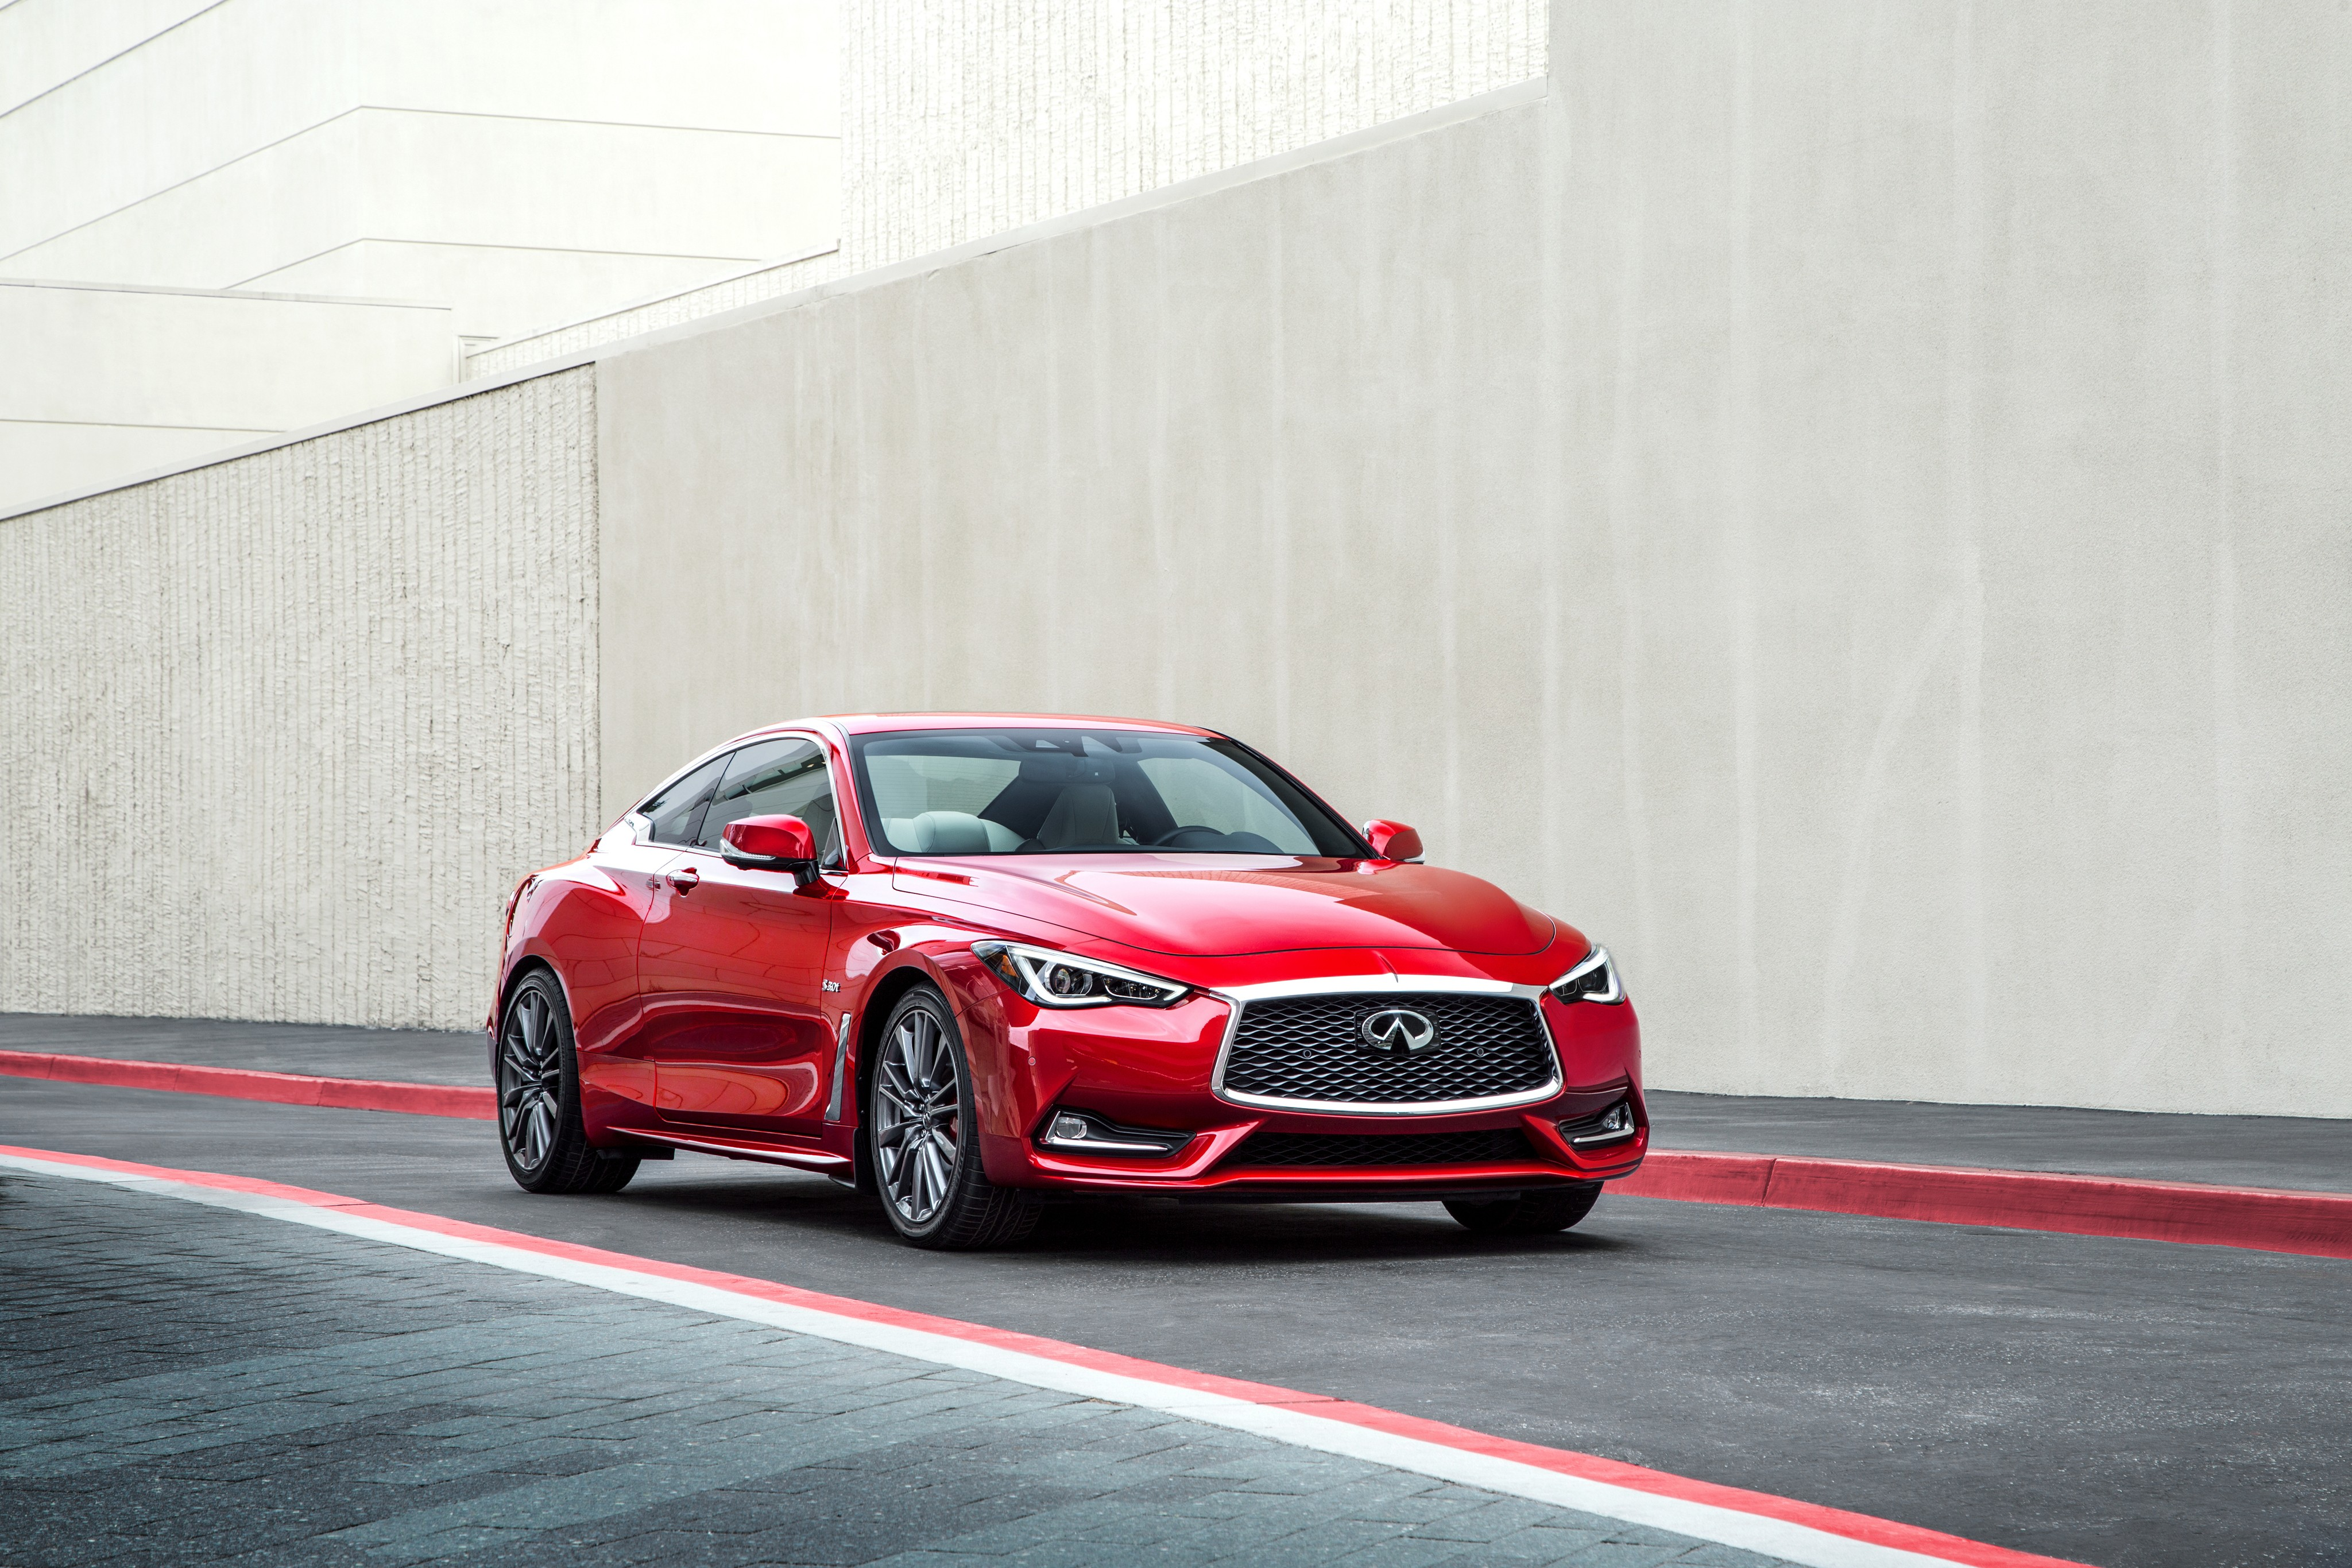 wallpaper infiniti q60 red sport 400 coupe red sport cars bikes 11843. Black Bedroom Furniture Sets. Home Design Ideas